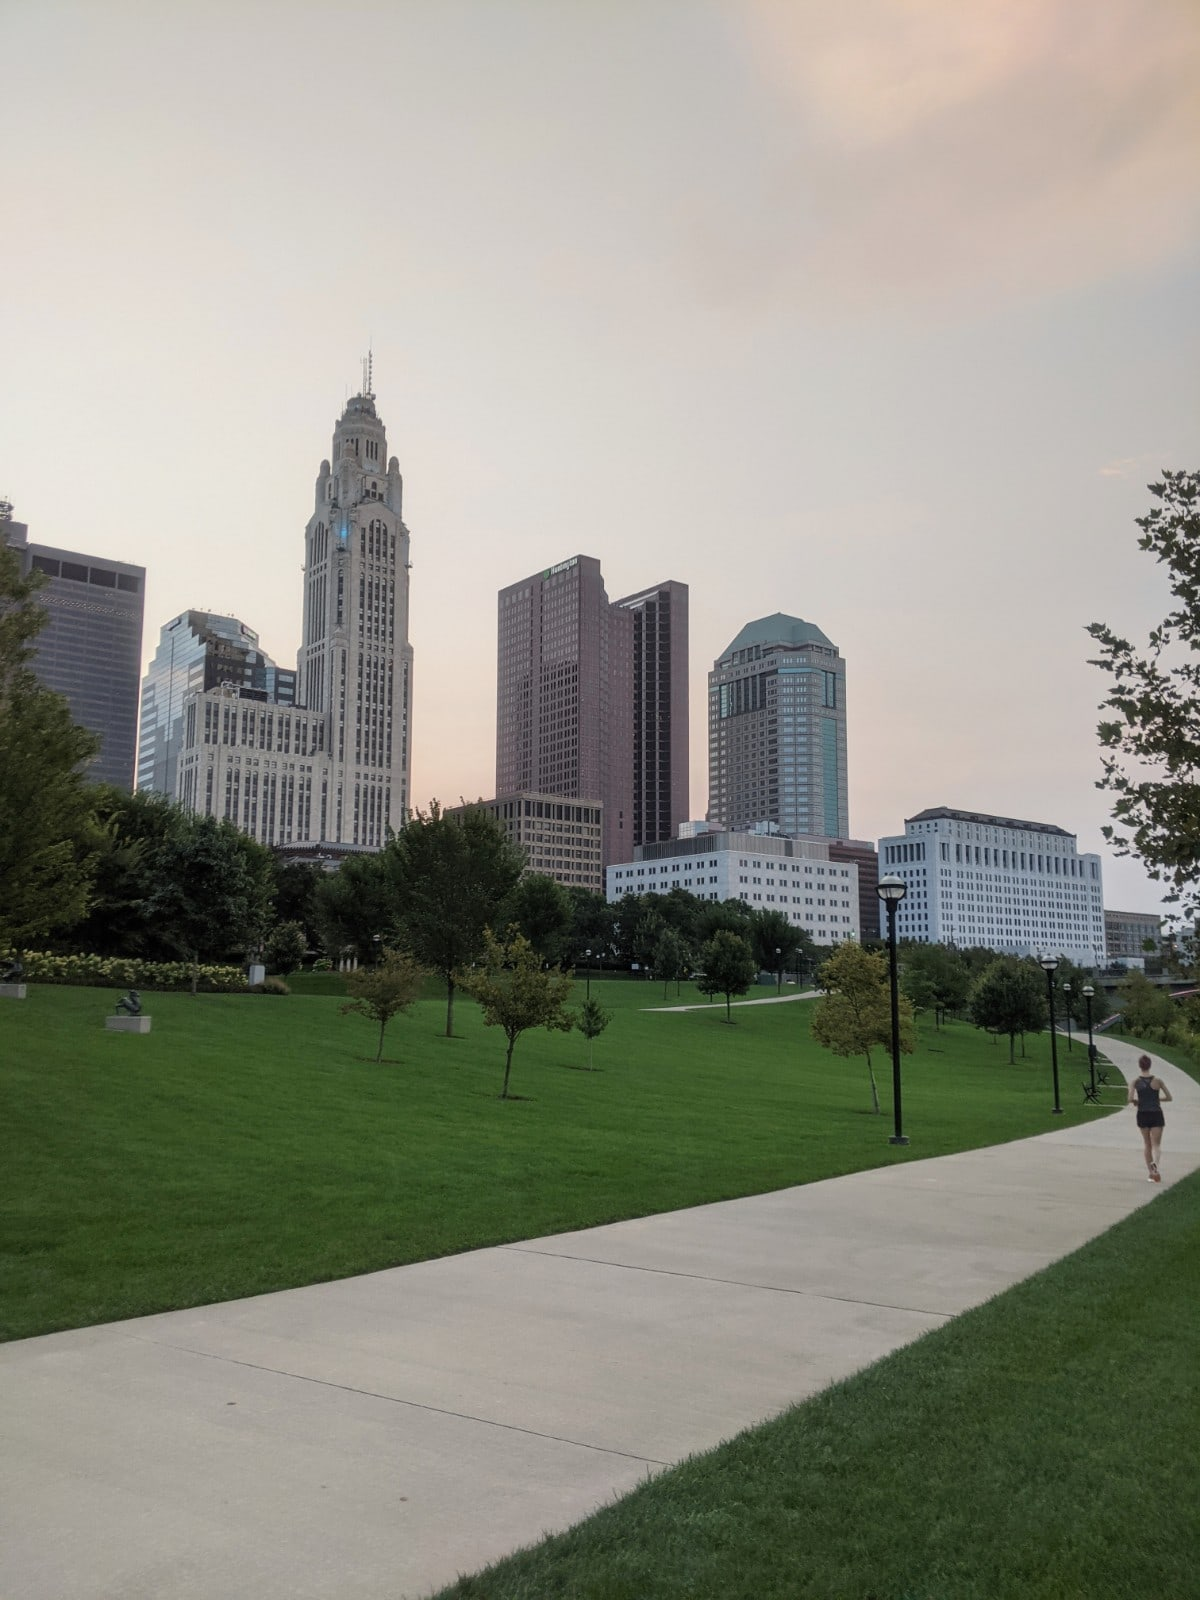 the Columbus skyline, viewed up-close from the Scioto Mile walking path with a runner in the distance